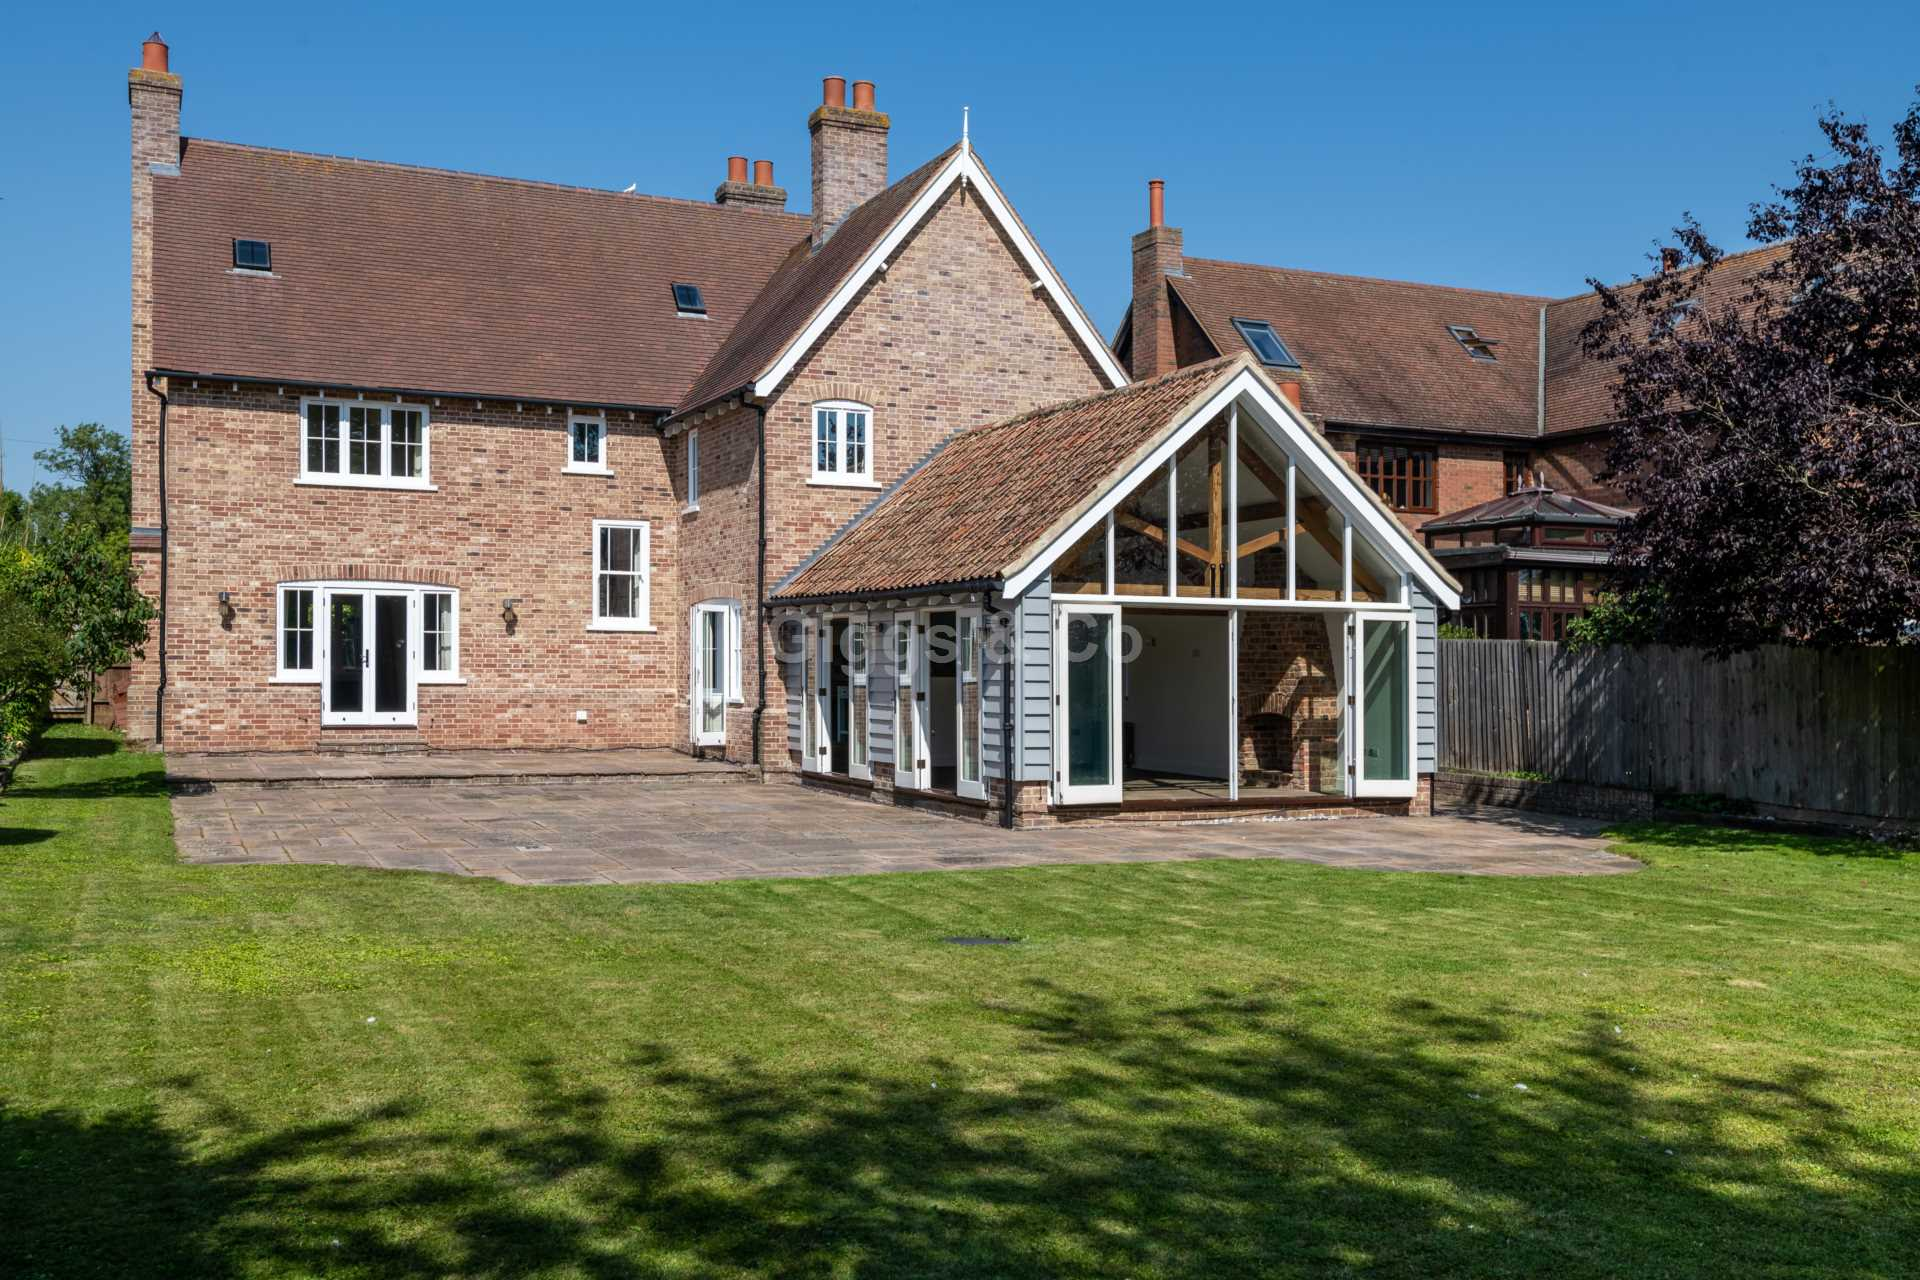 6 bed detached-house to rent in Ermine Street, Great Stukeley, Huntingdon, PE28